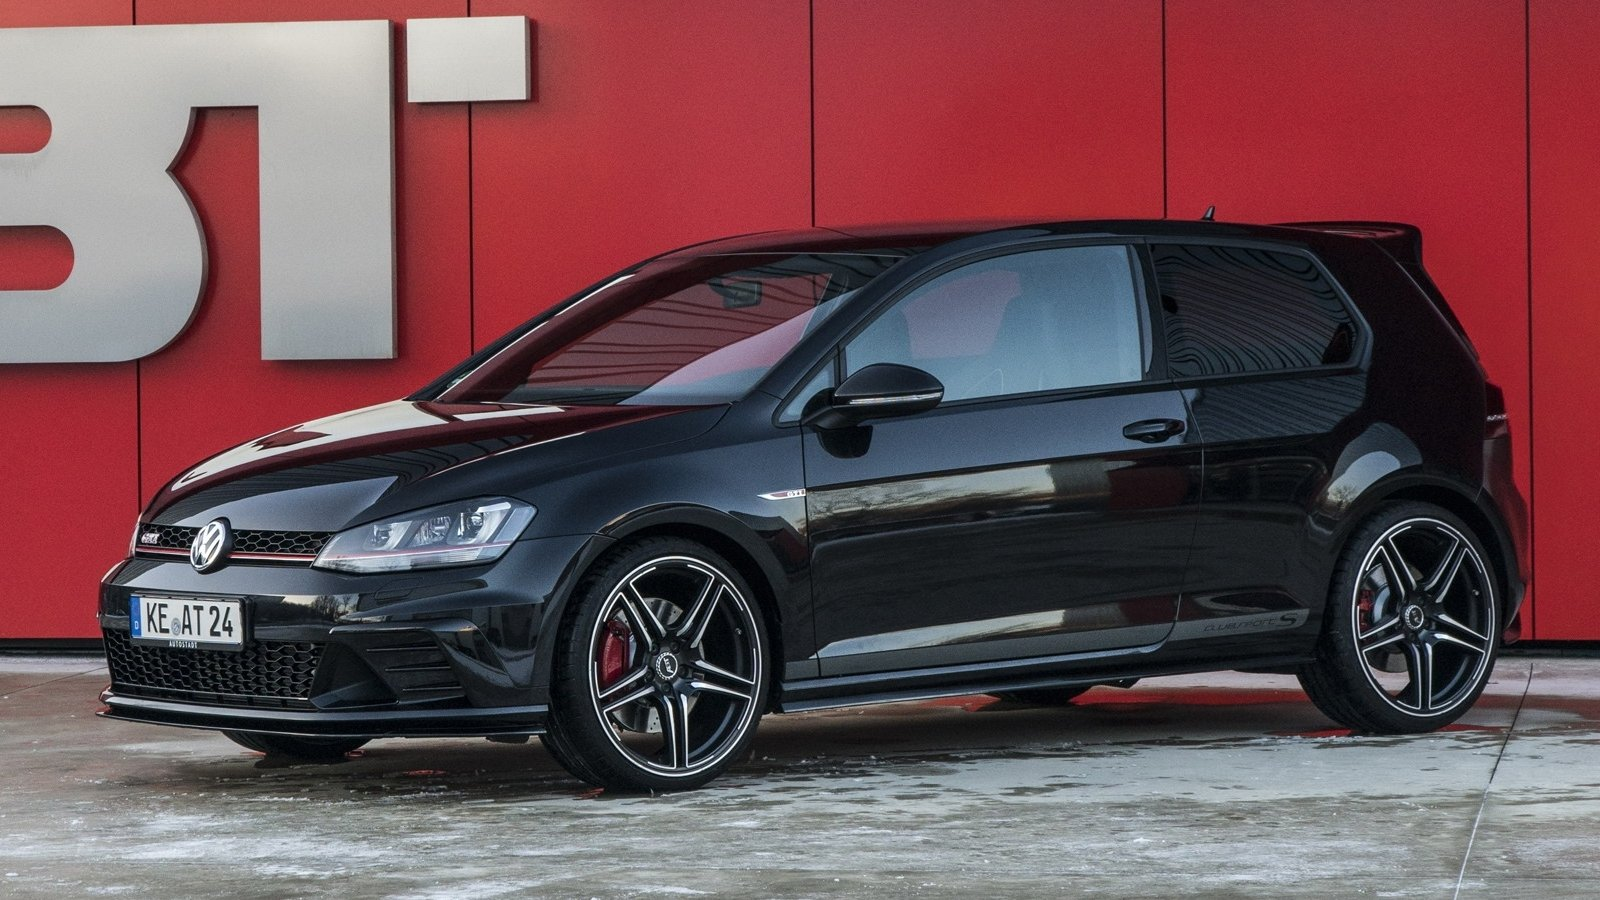 2017 Volkswagen Golf Gti Clubsport By Abt Sportsline Top